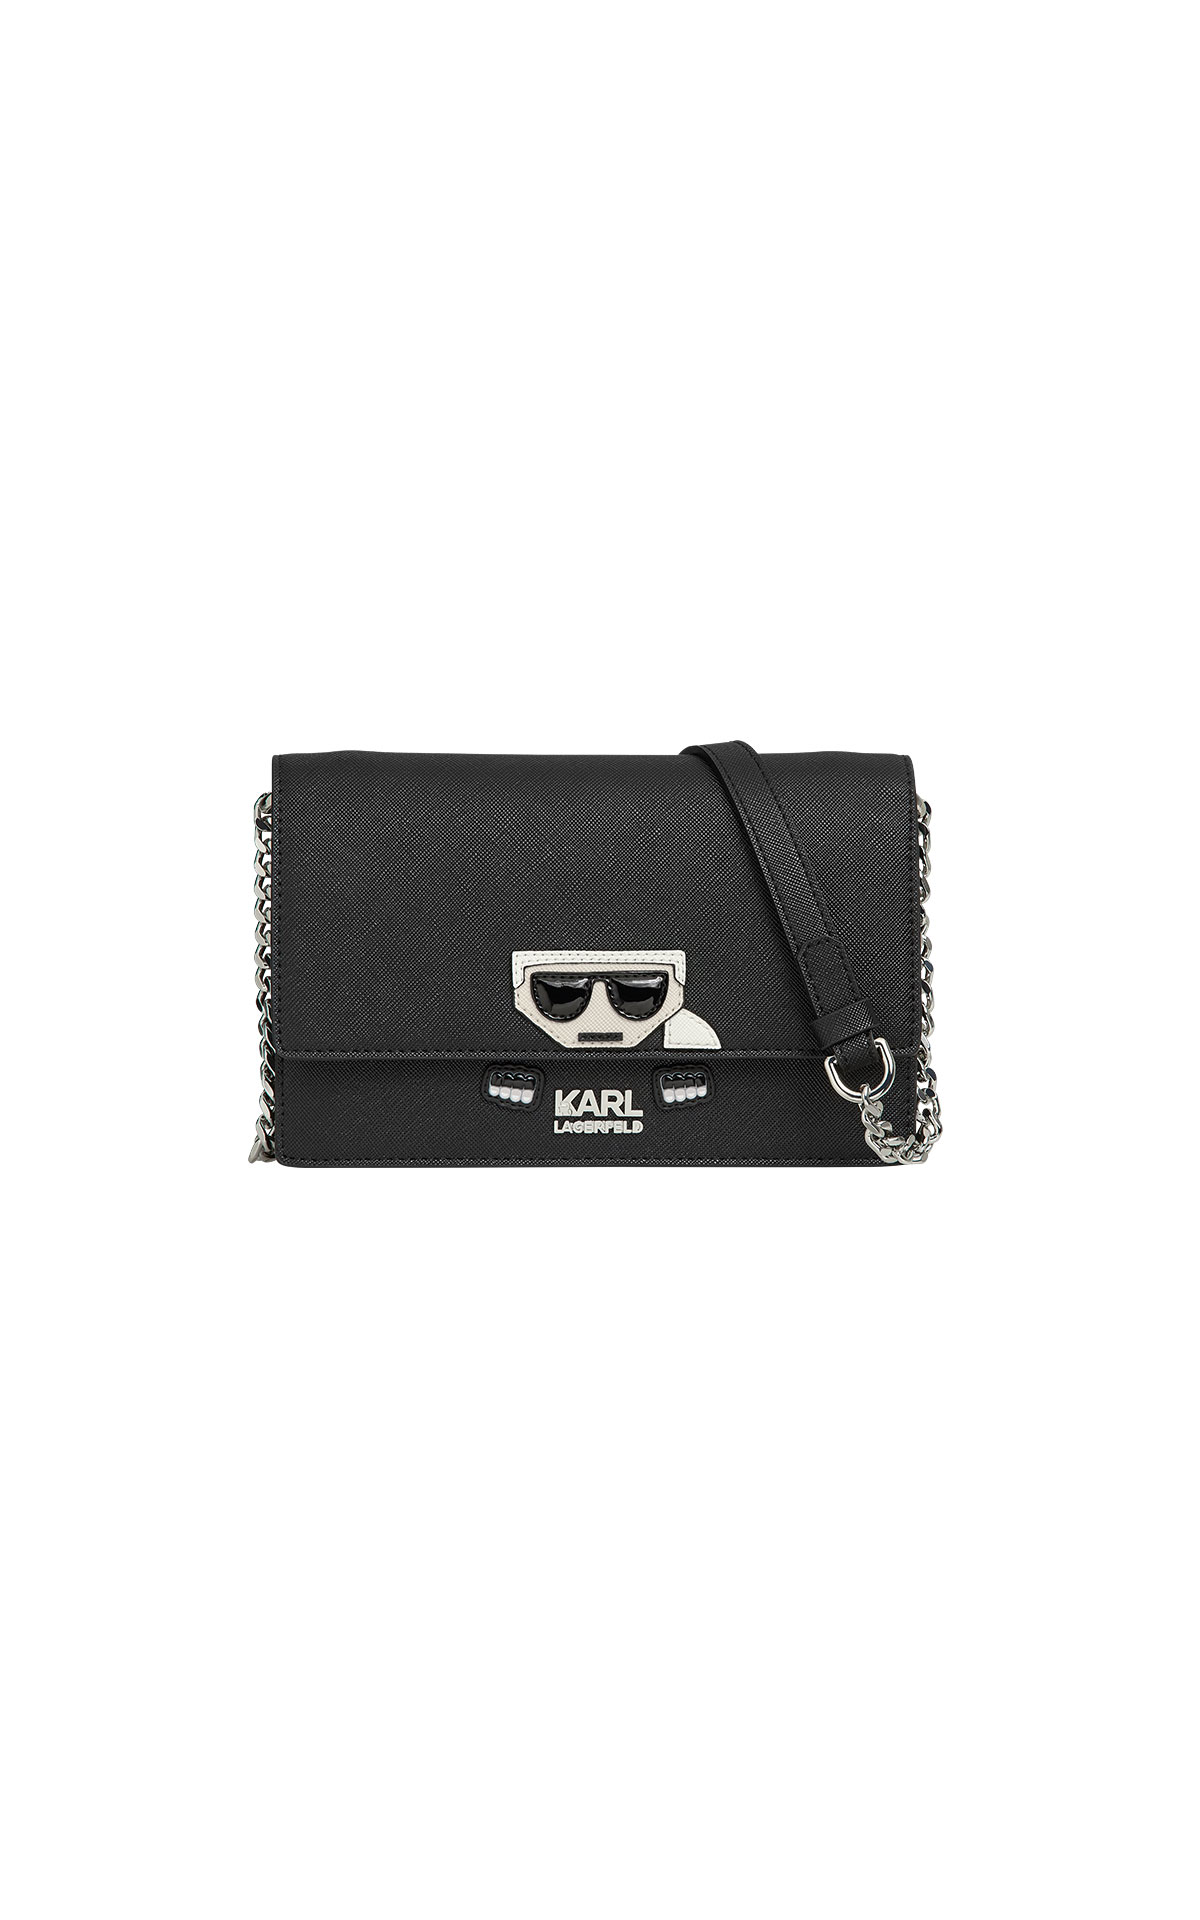 Karl Lagerfeld kocktail wallet on chain at The Bicester Village Shopping Collection